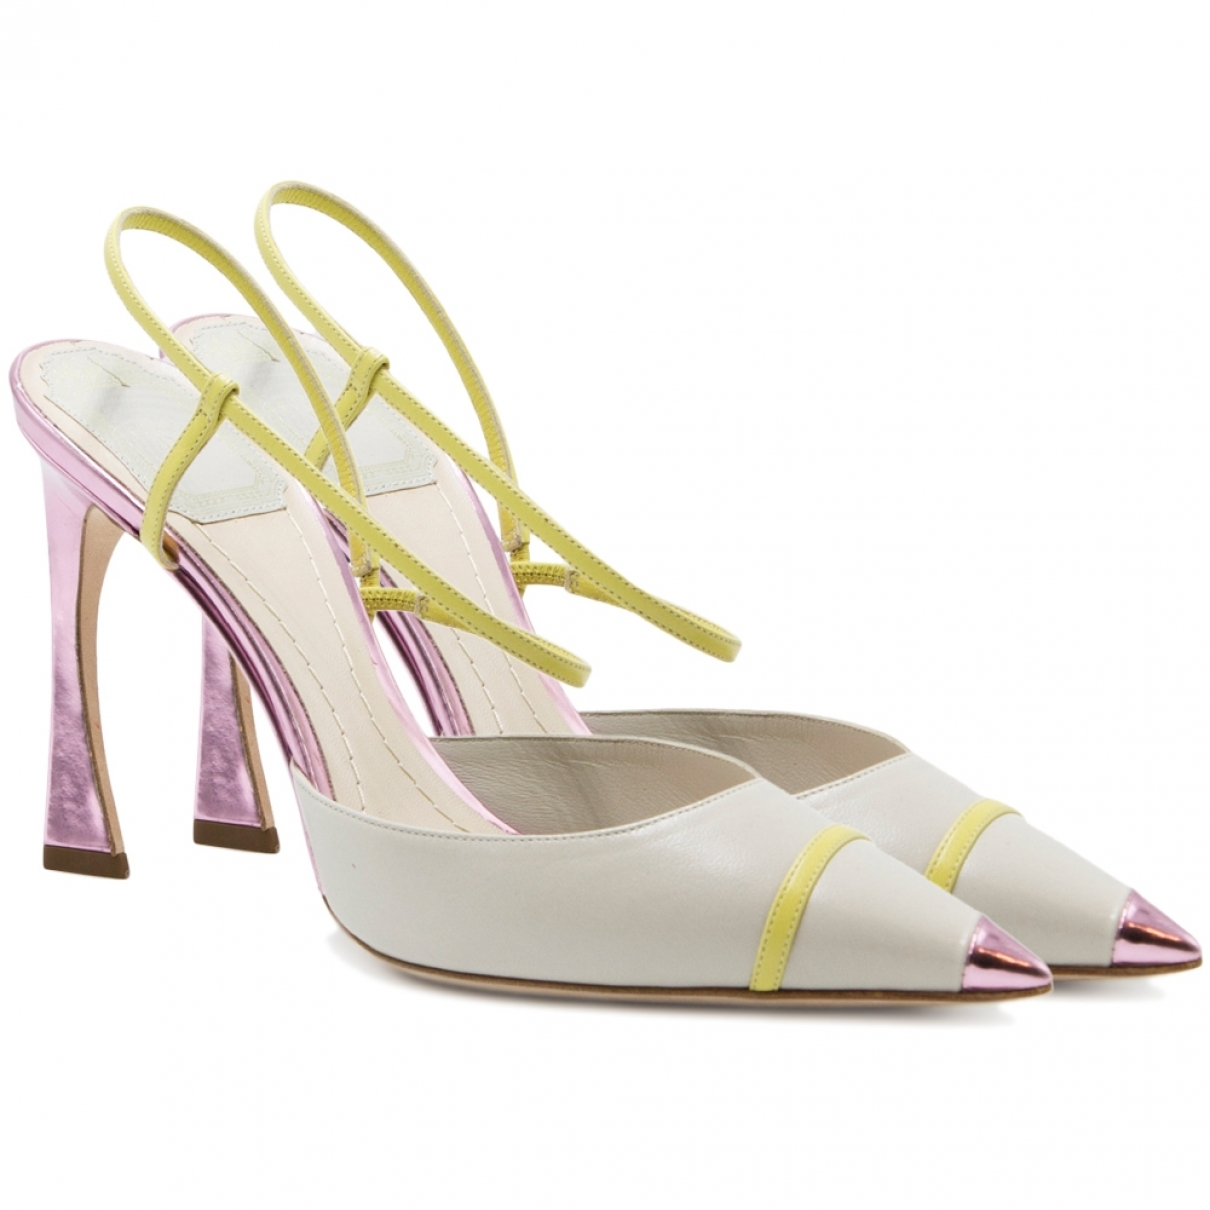 Dior \N White Leather Sandals for Women 37.5 EU